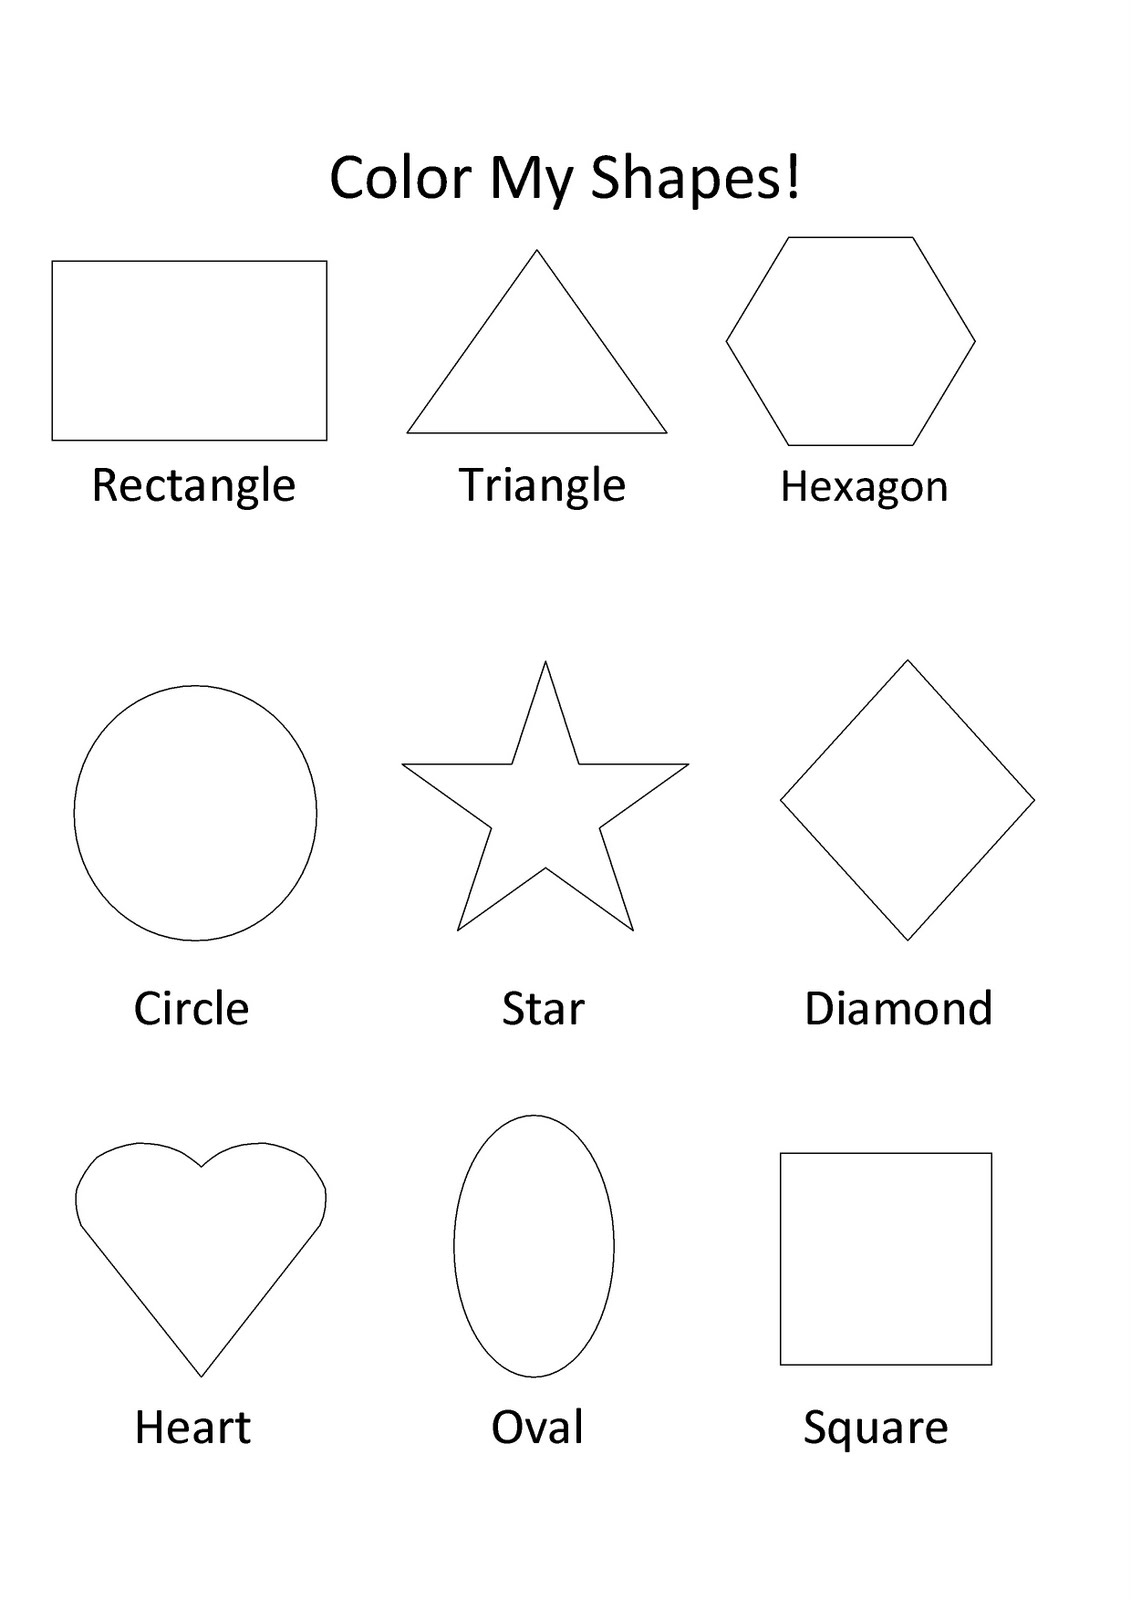 coloring pictures with shapes shapes coloring pages for childrens printable for free shapes pictures coloring with